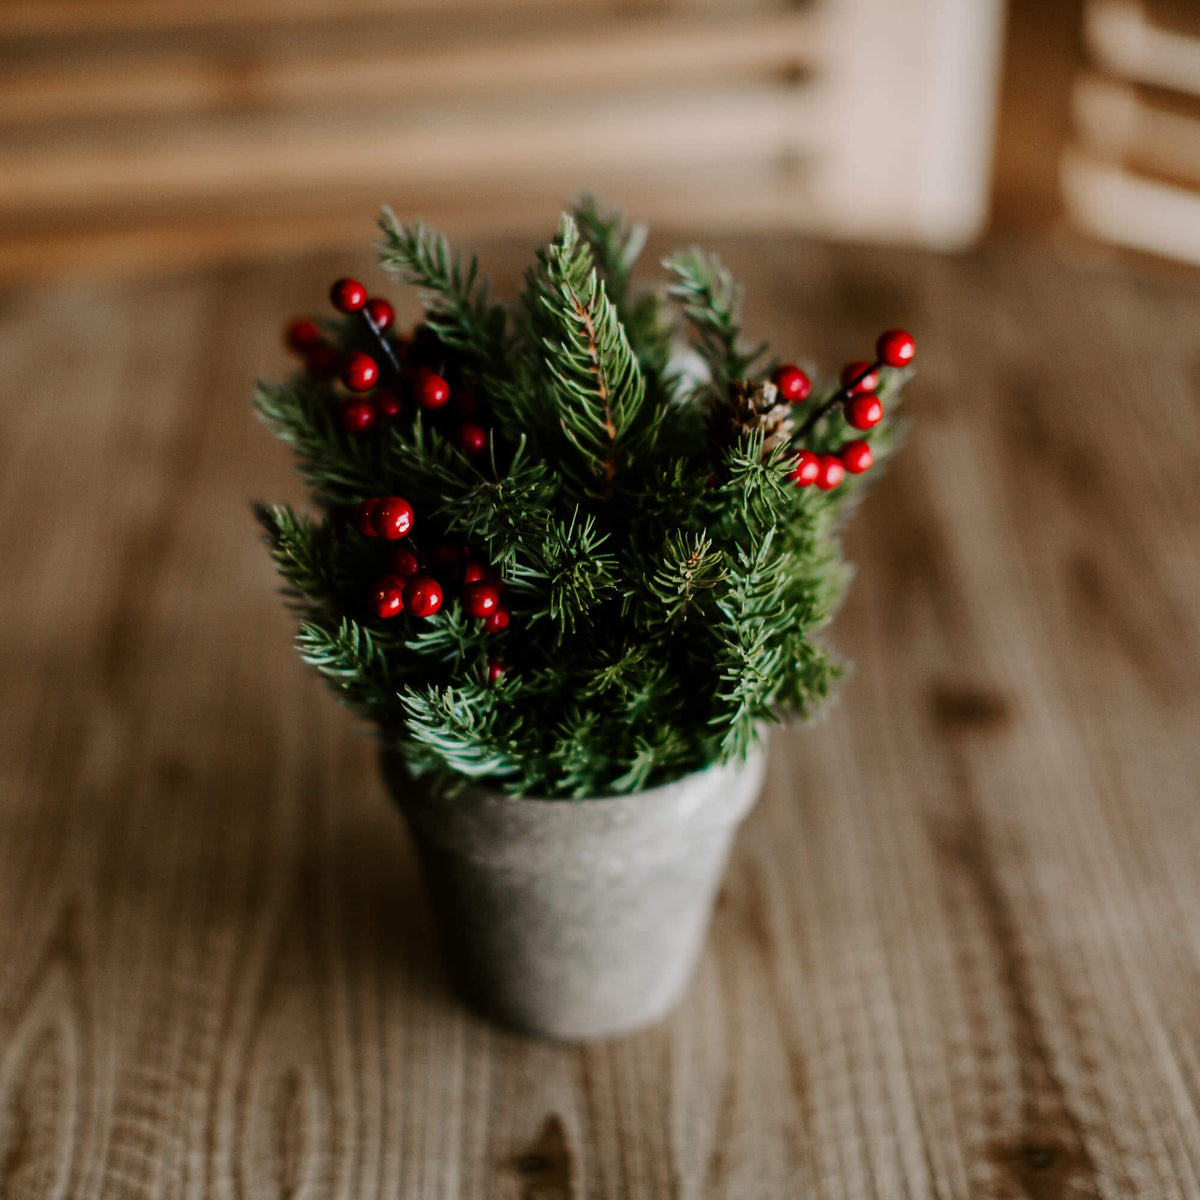 A 9 and half inch faux spruce sphere with tiny pinecones and red berry accents, inside a rustic gray pot for holiday tabletop decorating